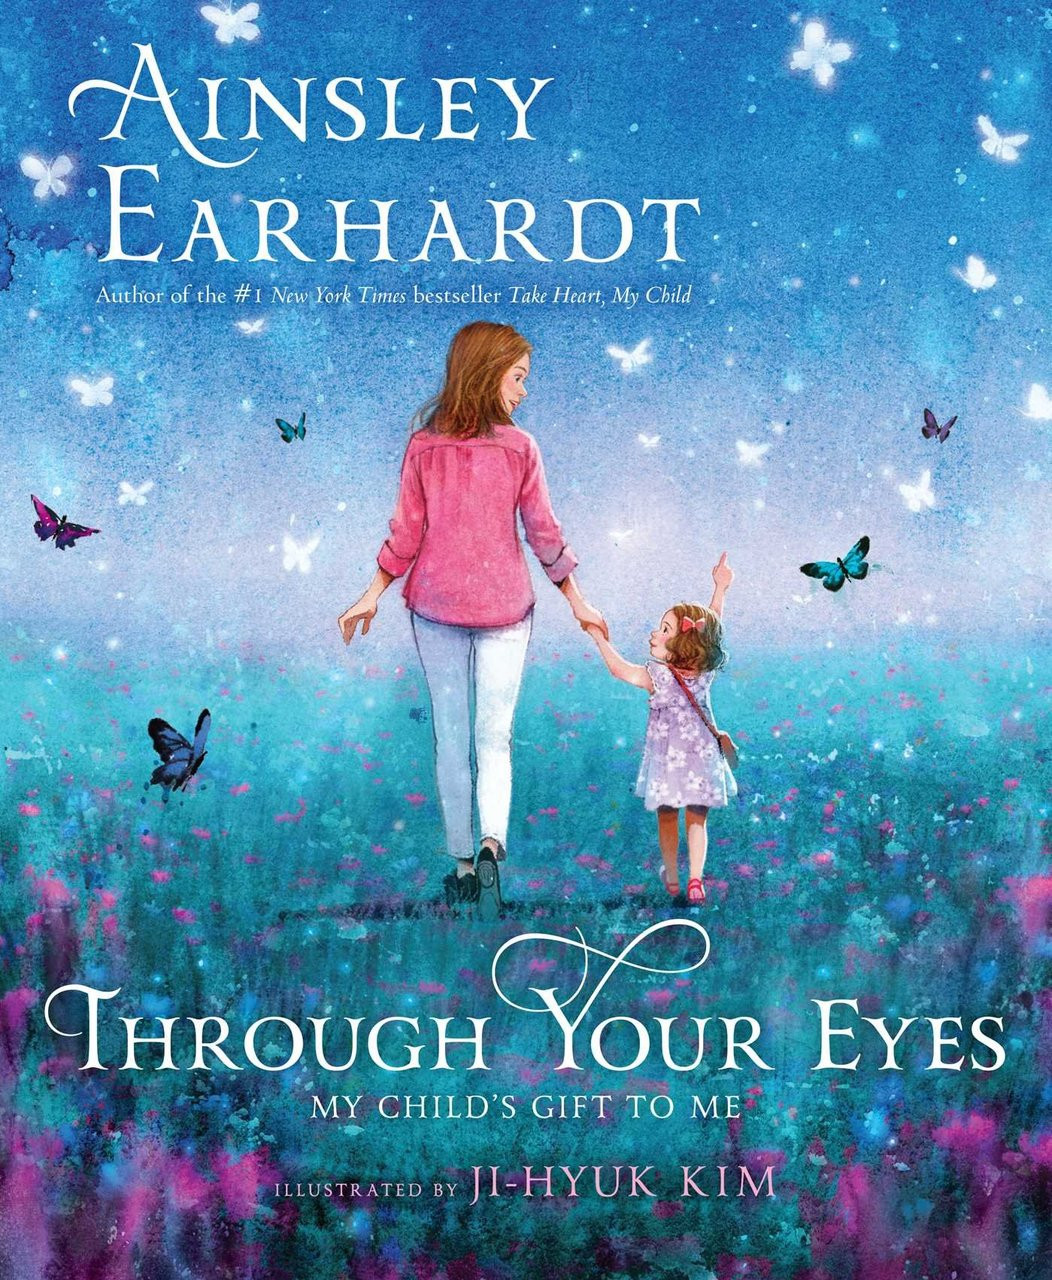 Through Your Eyes: My Child's Gift to Me by Ainsley Earhardt